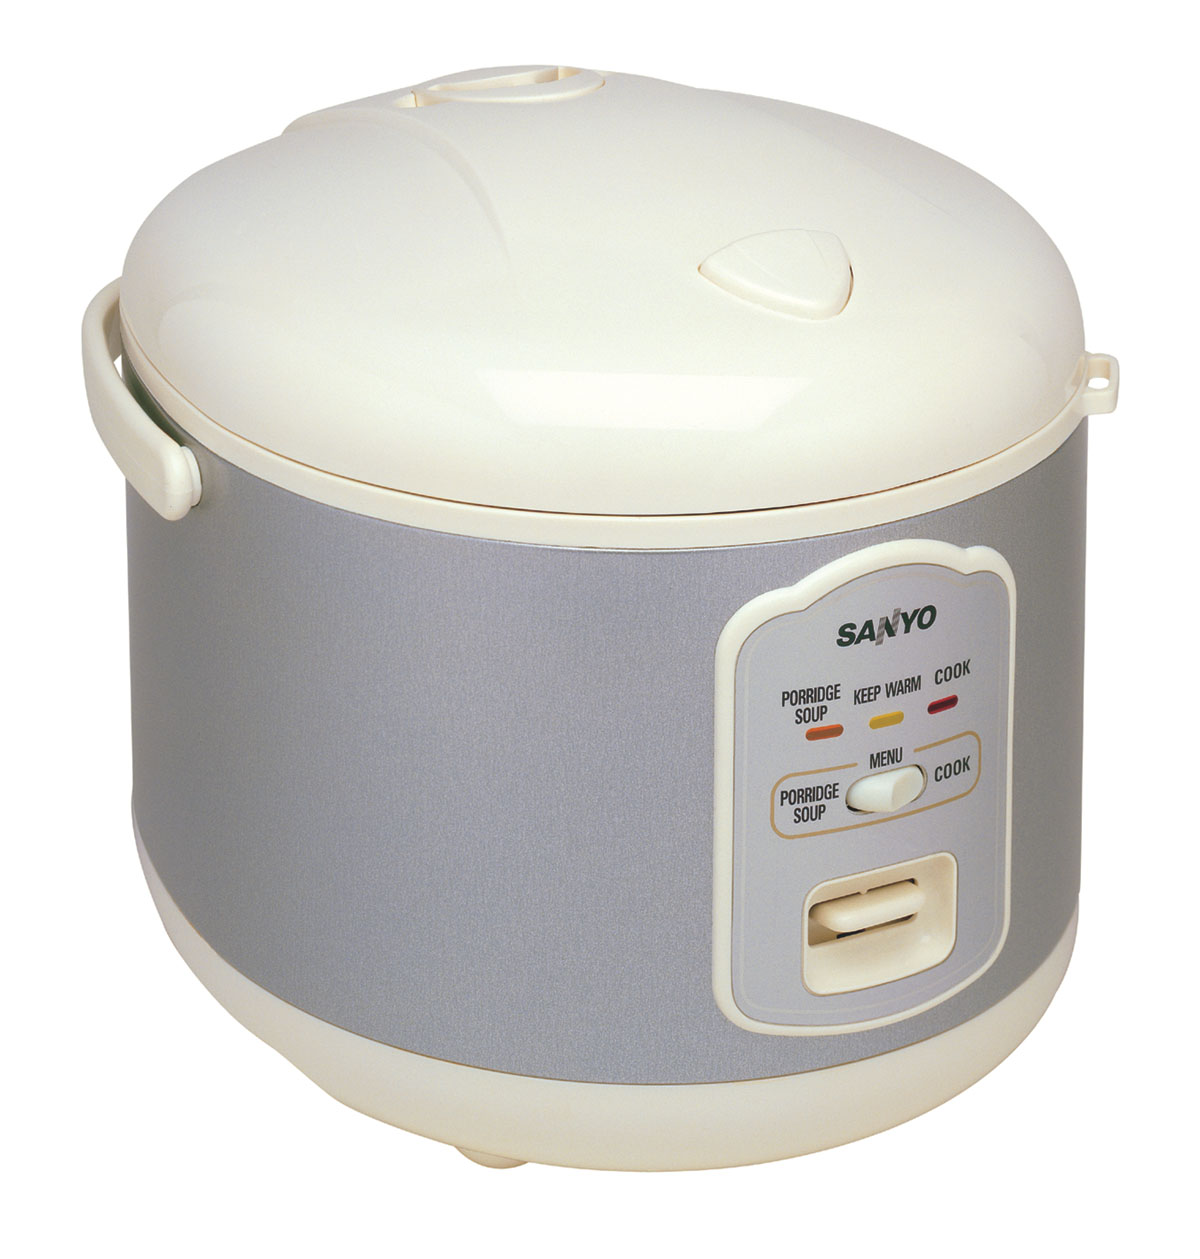 Sanyo ecjn55w  white rice cooker 5.5cup soup function